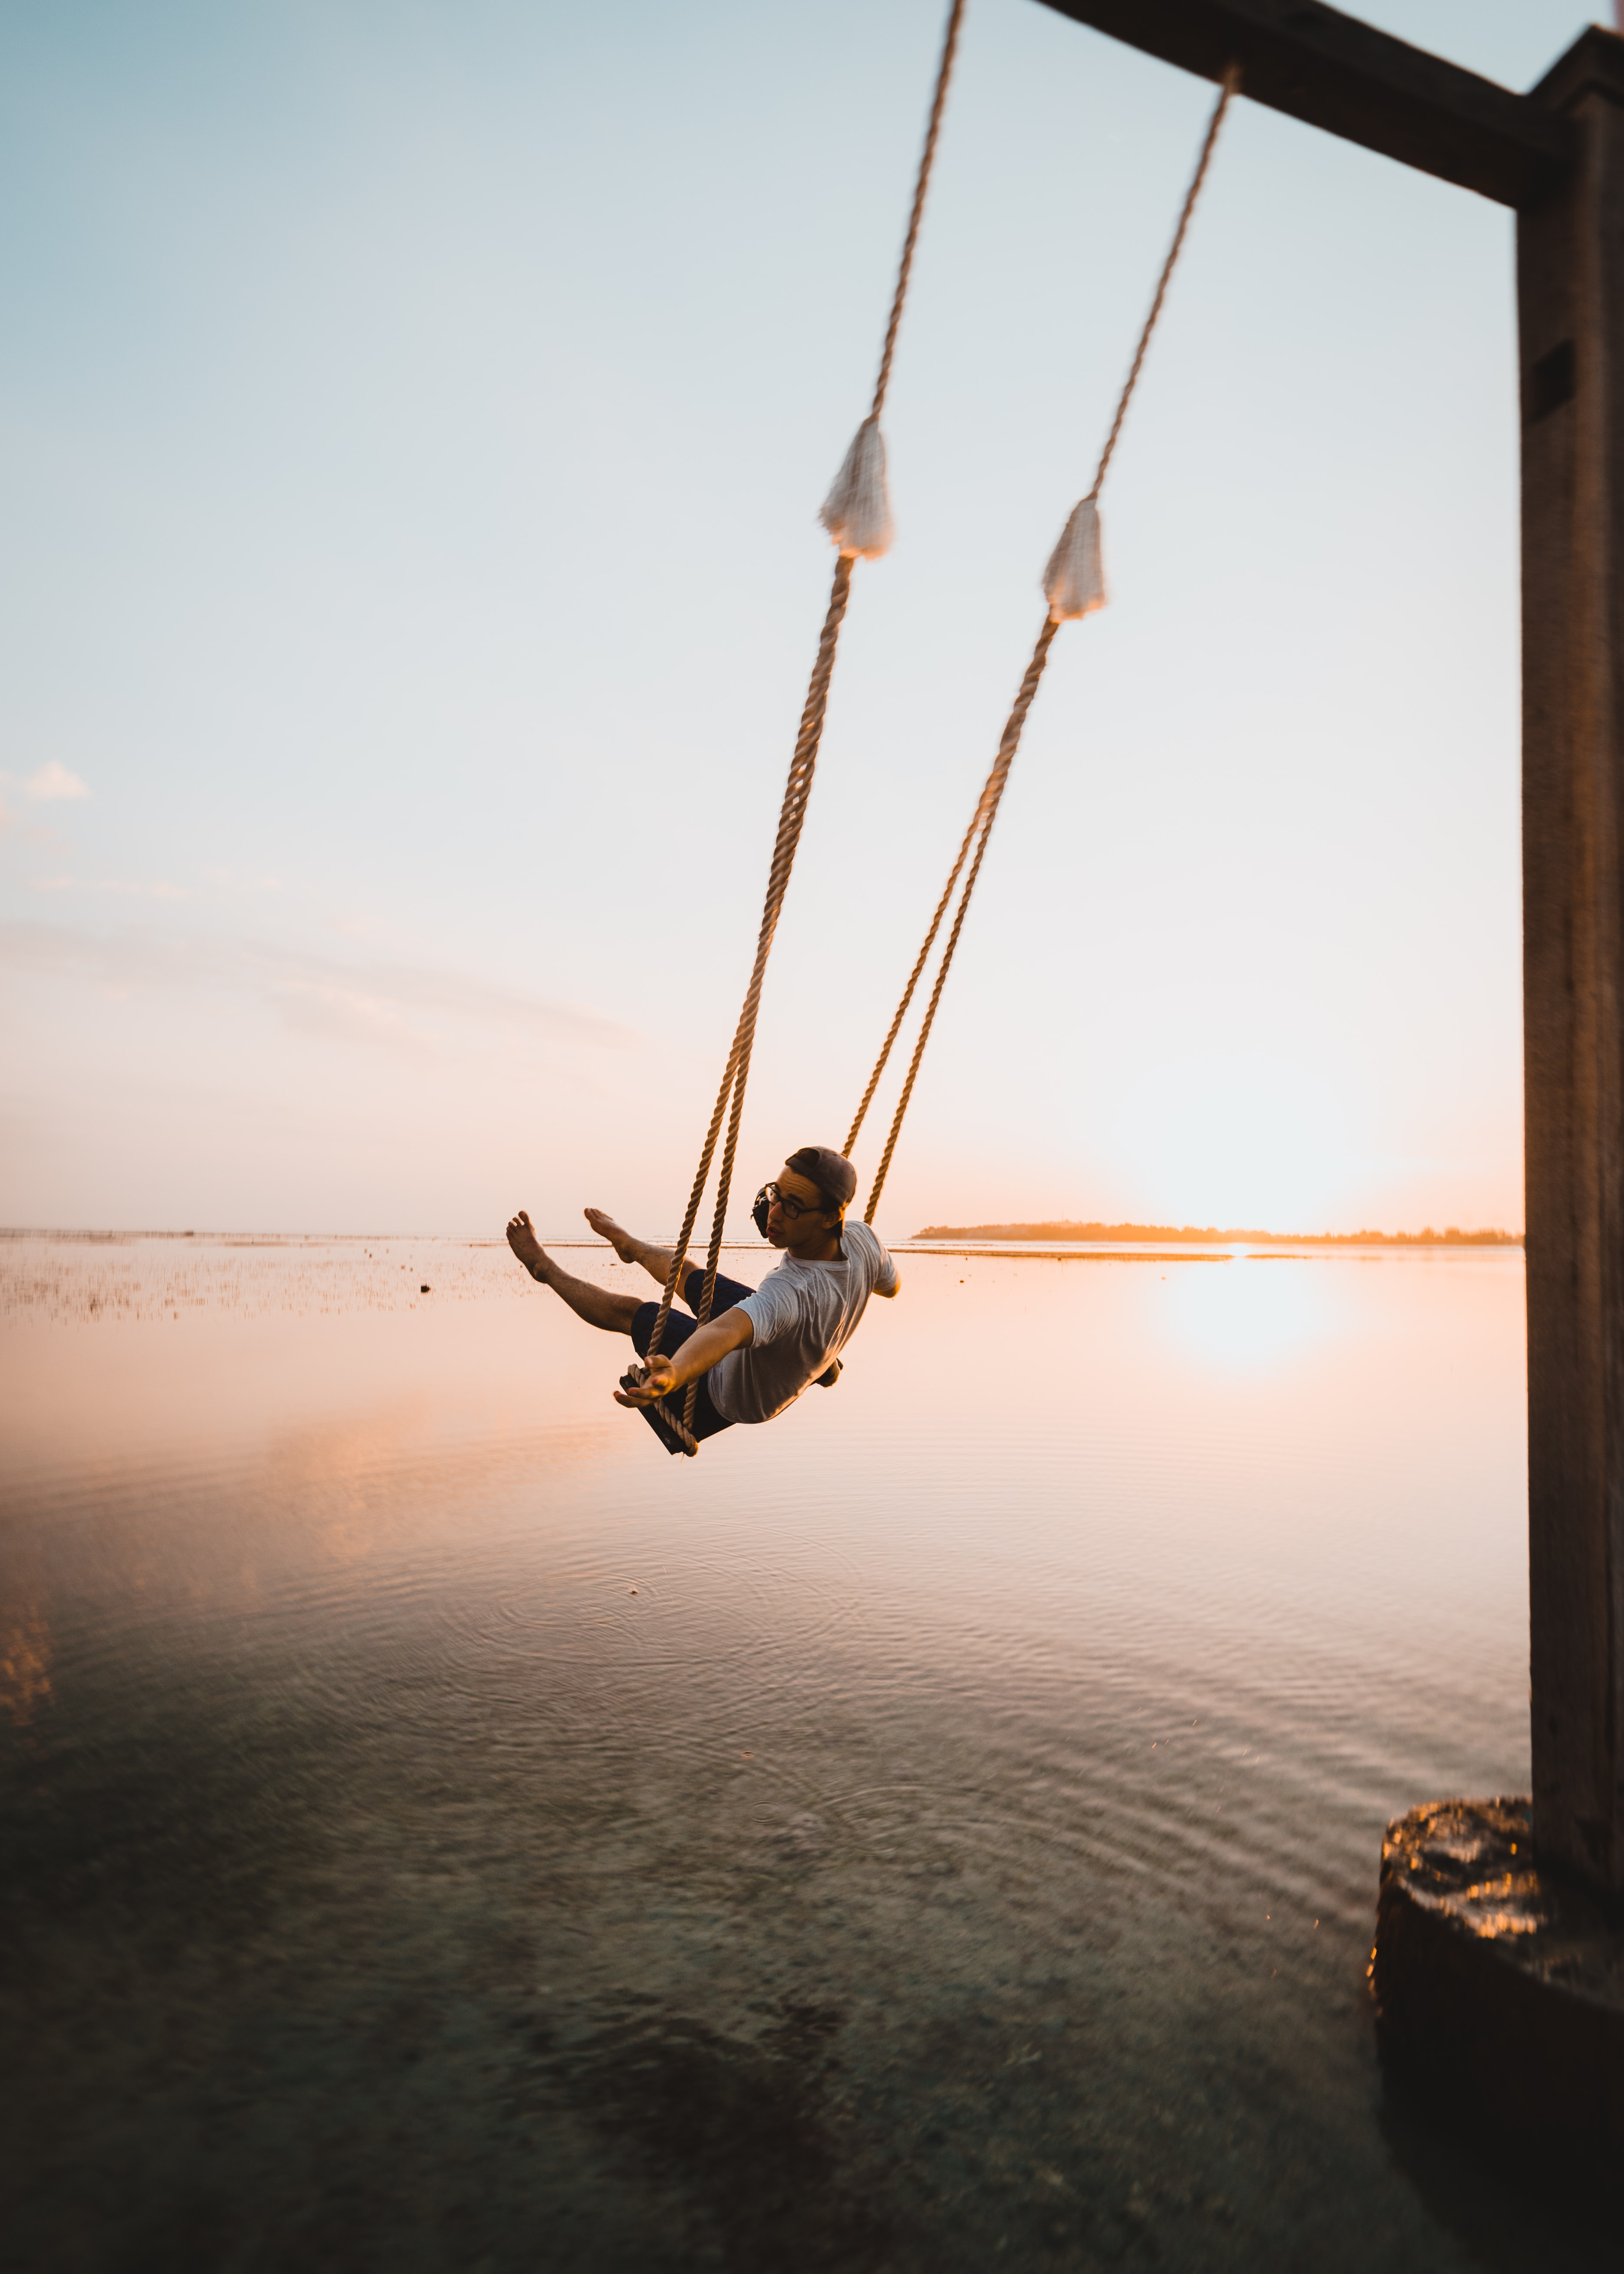 man on swing near body of water